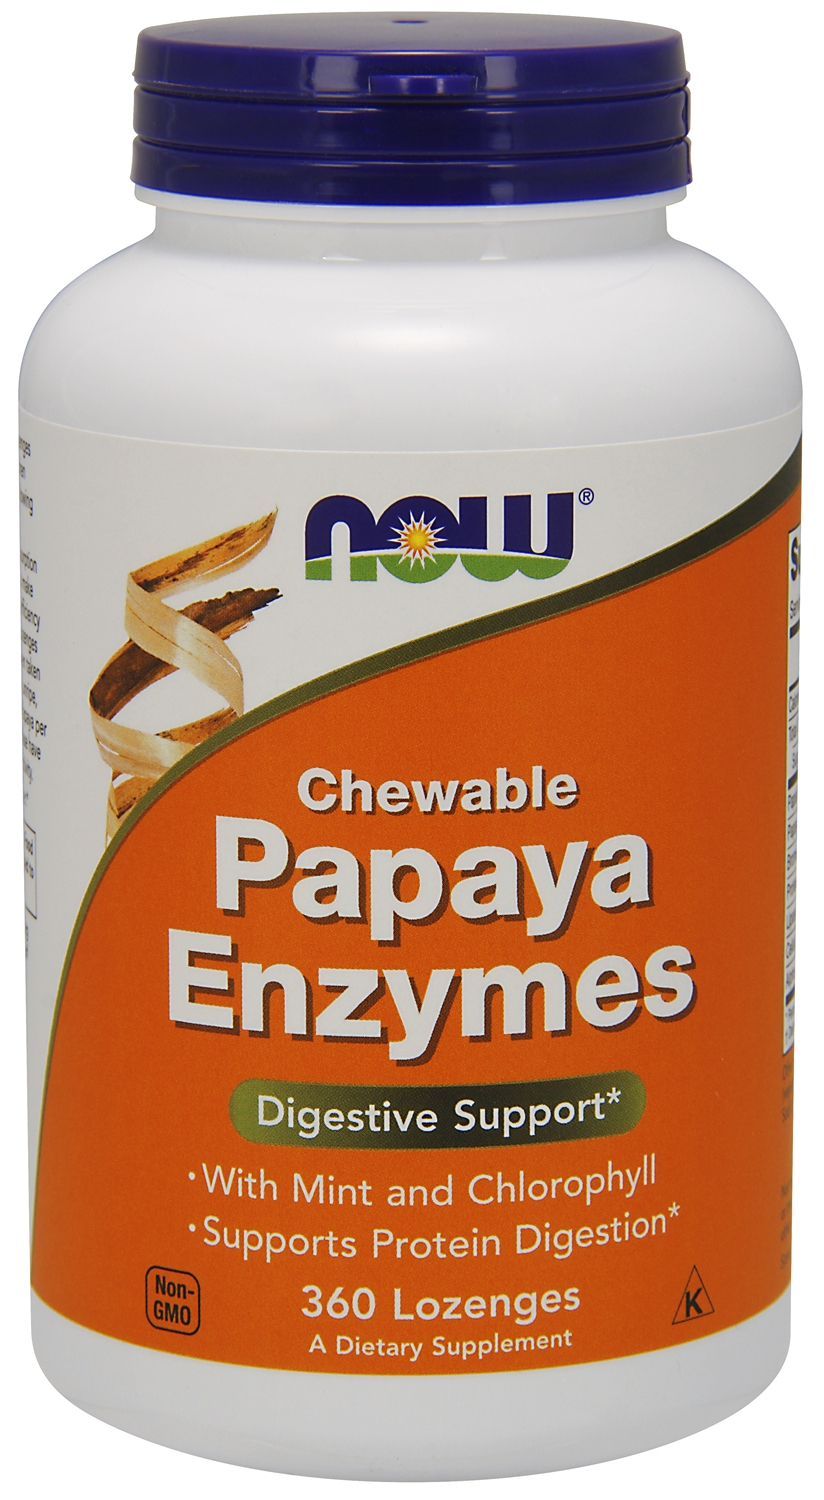 Papaya Enzymes Chewable 360 Lozenges by NOW